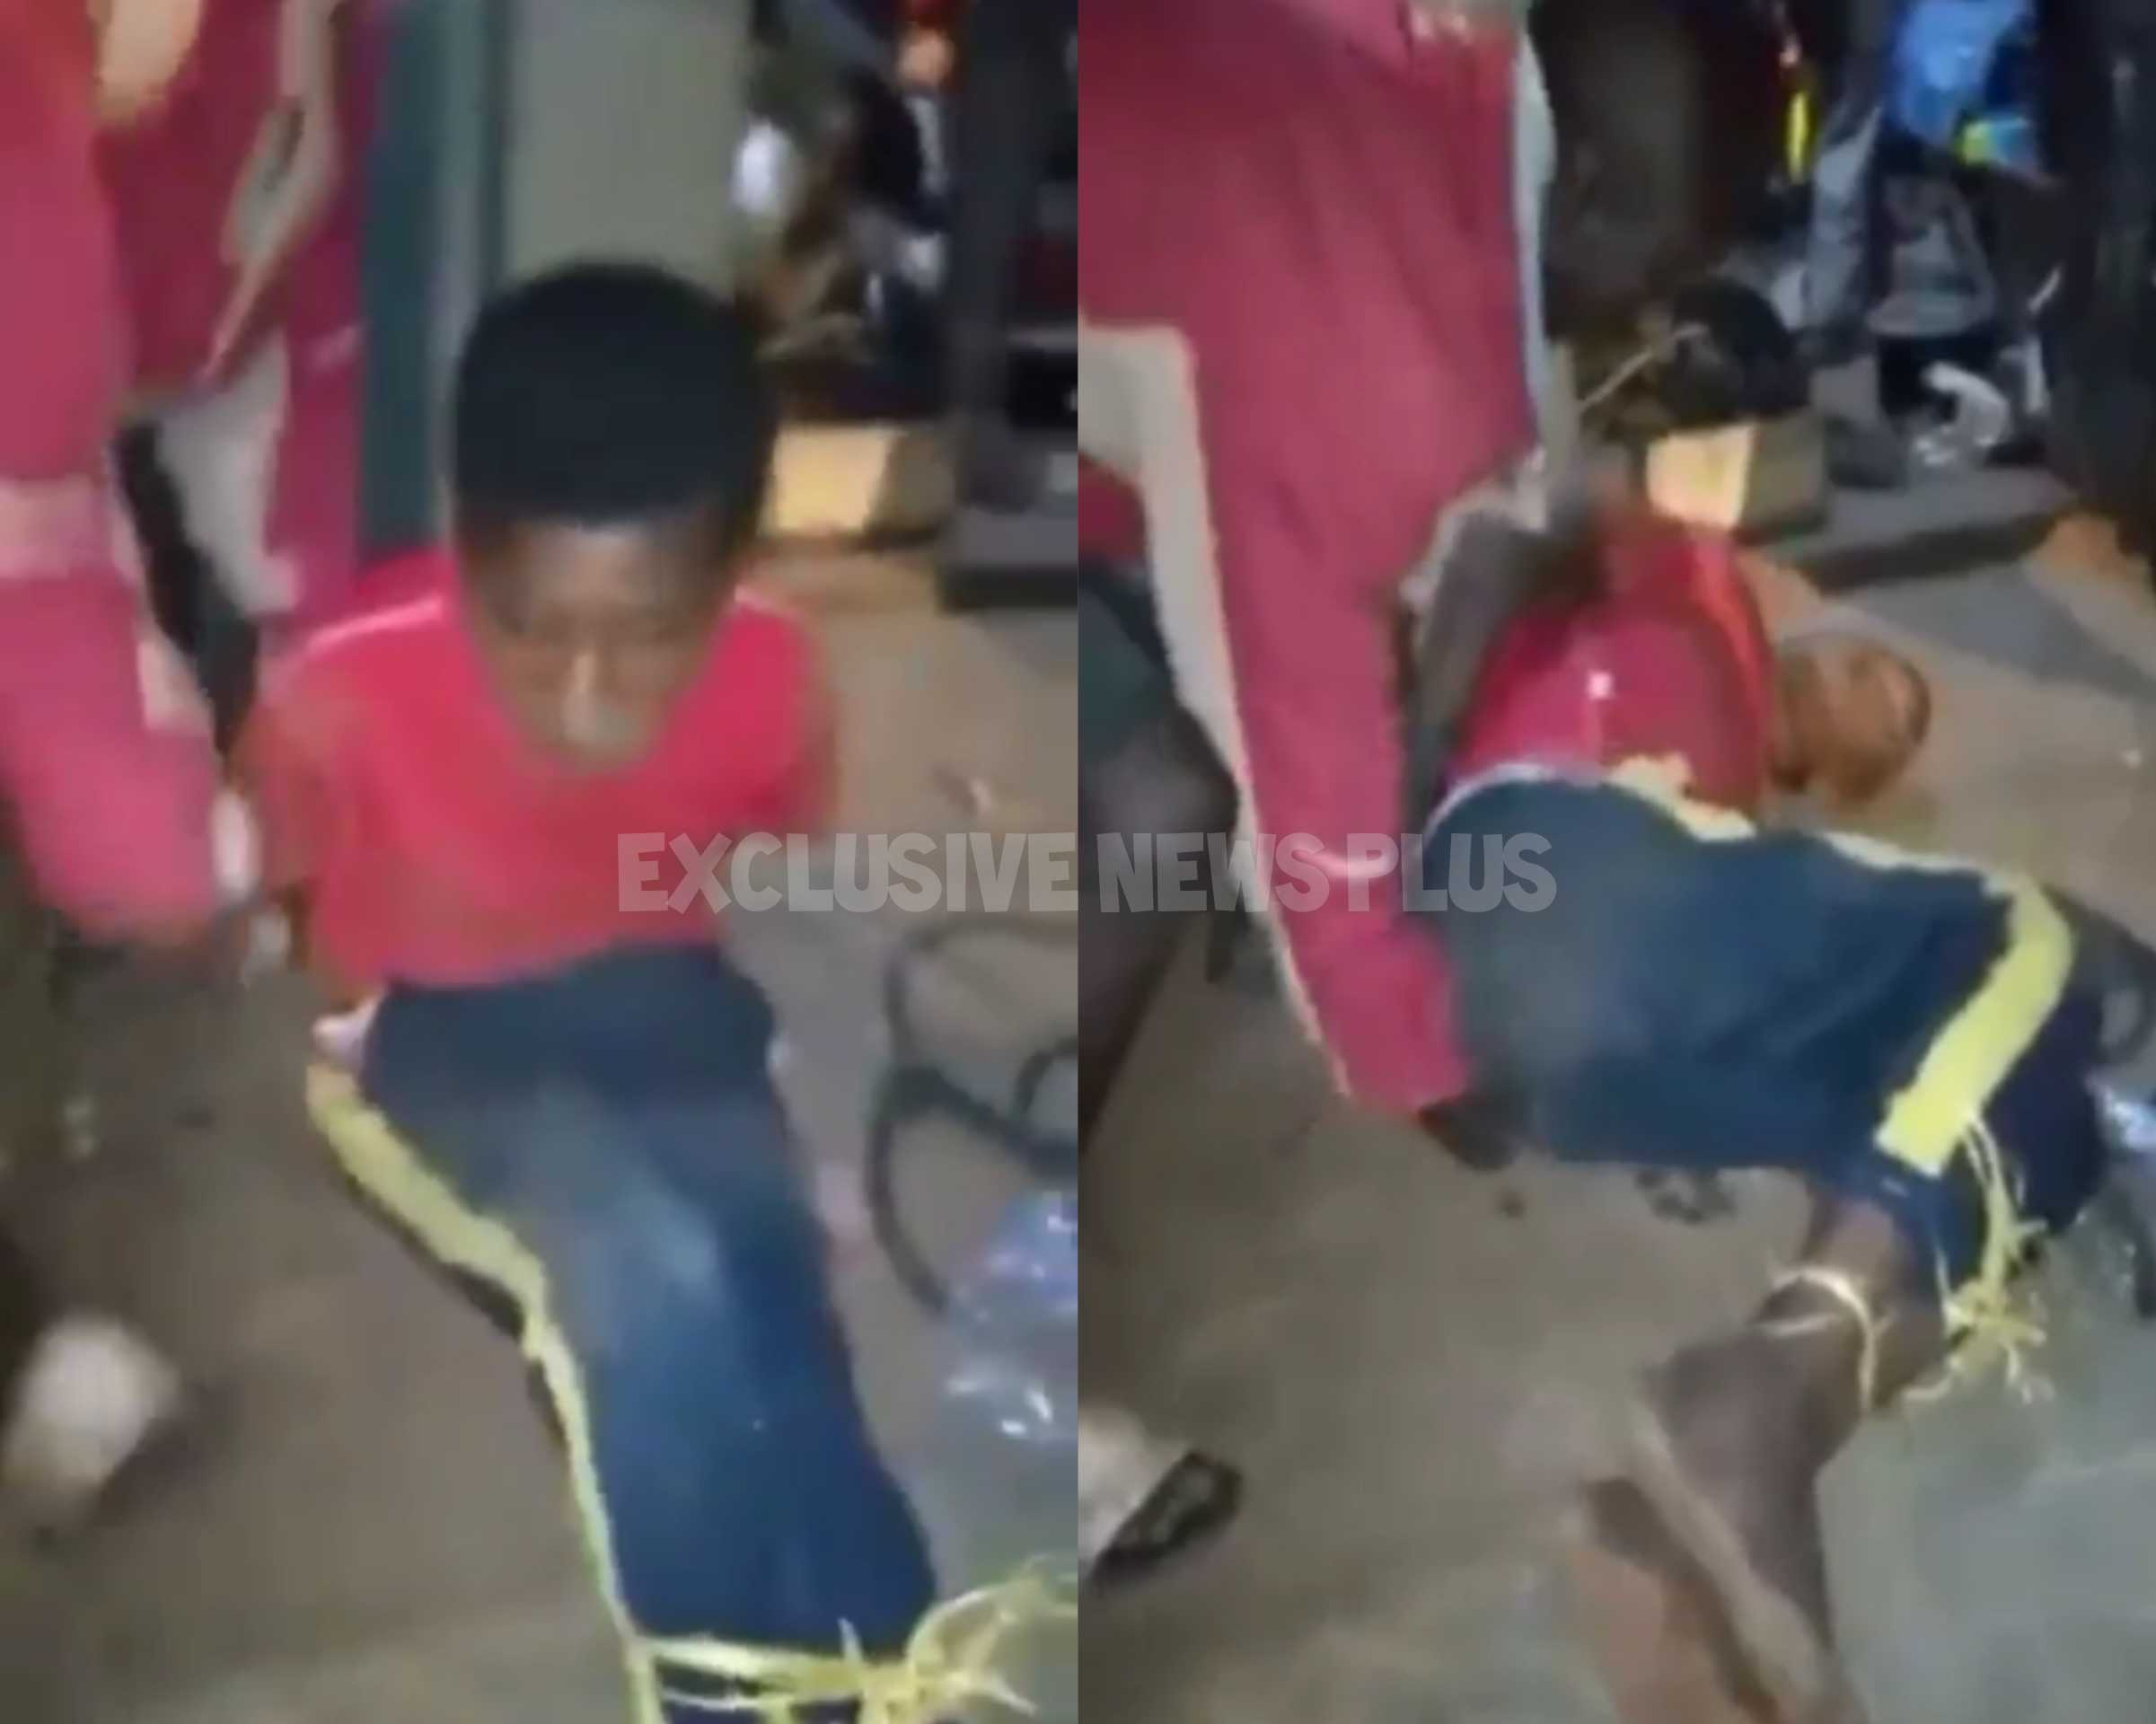 At Agogo, an iron rod was pushed through the anus of a suspected 16-year-old thief.